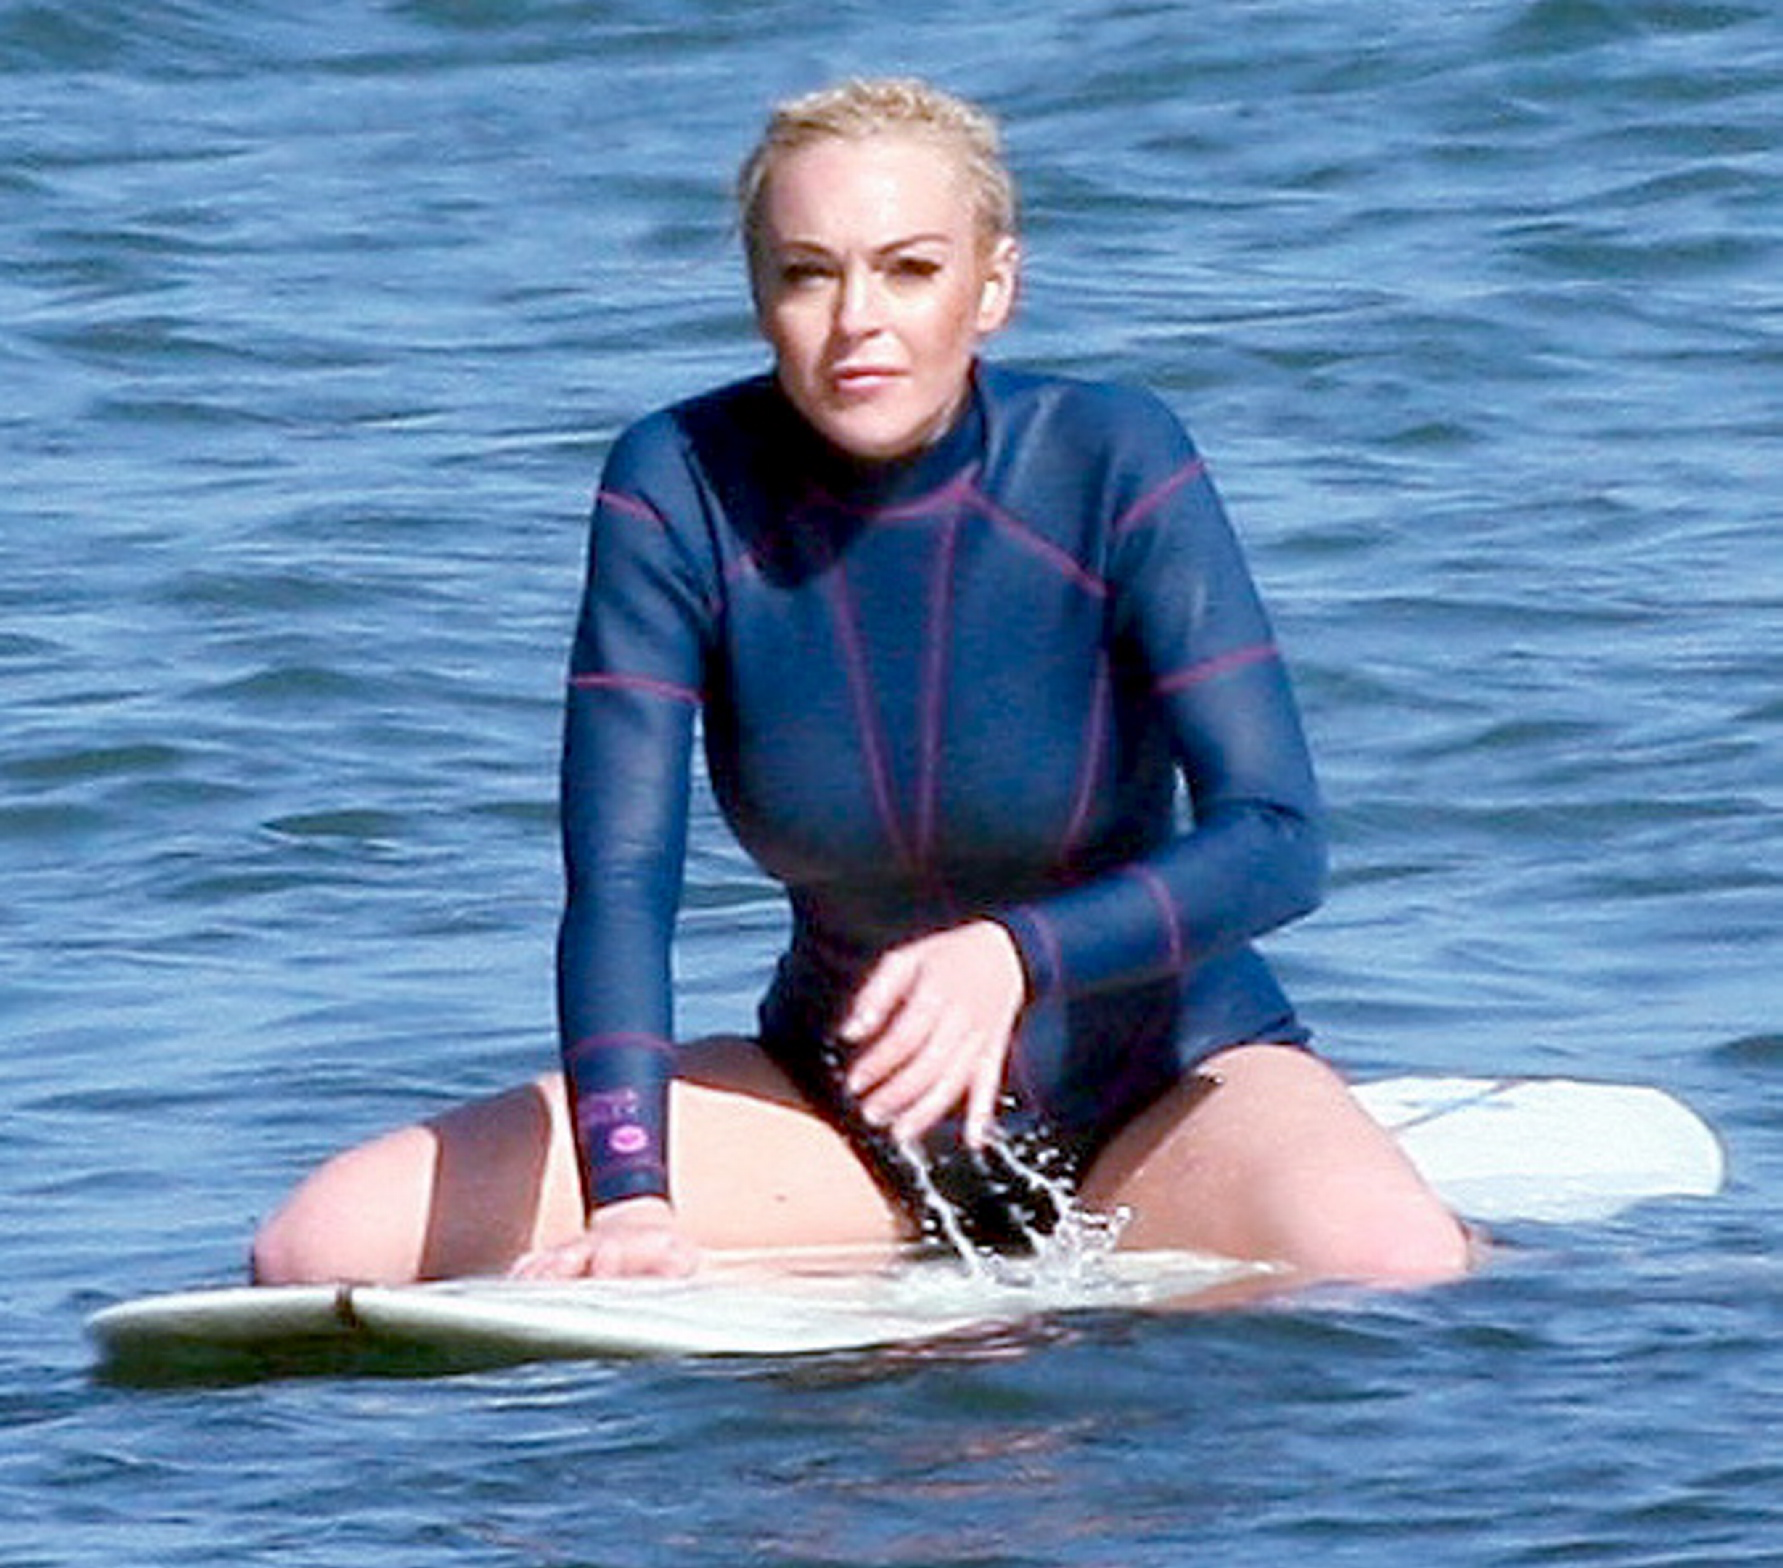 lindsay-wagner-in-wetsuit-sexting-during-sex